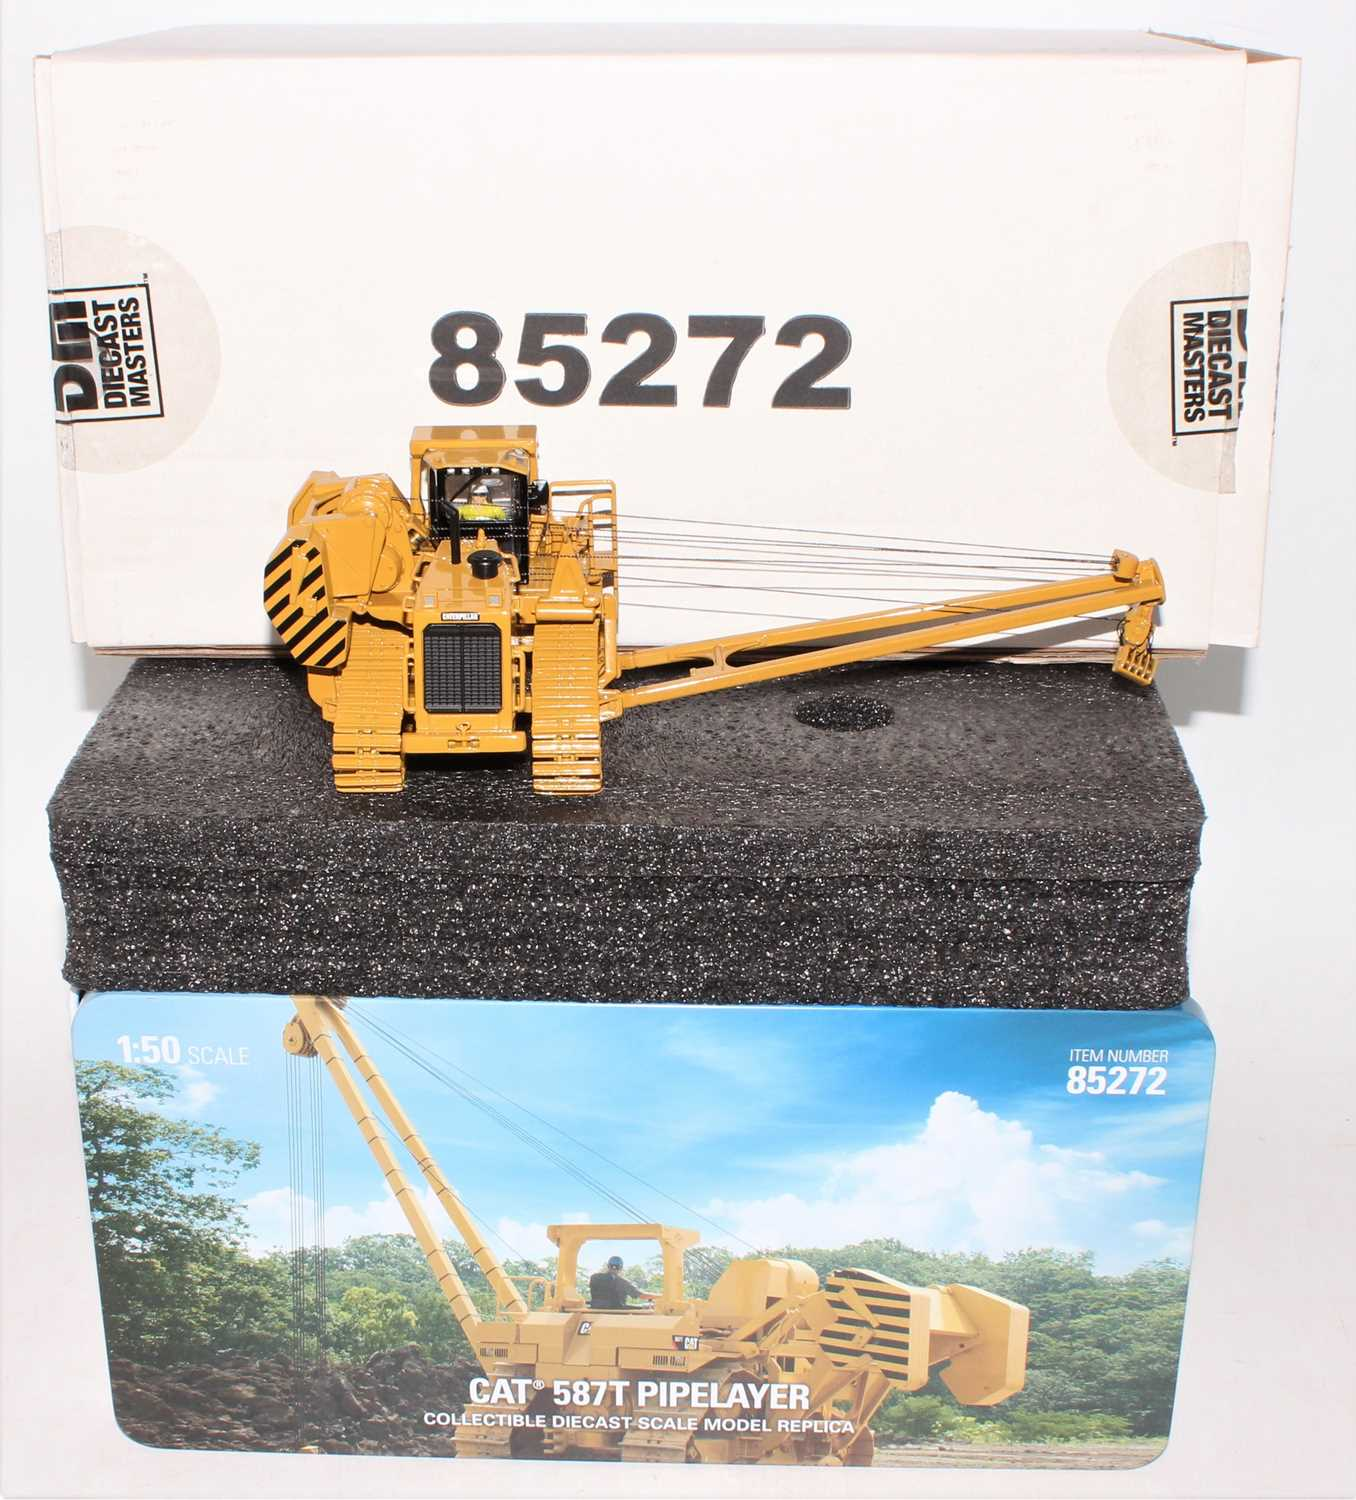 A diecast Masters Real Replicas Highline series model No. 85272 1/50 scale boxed model of a